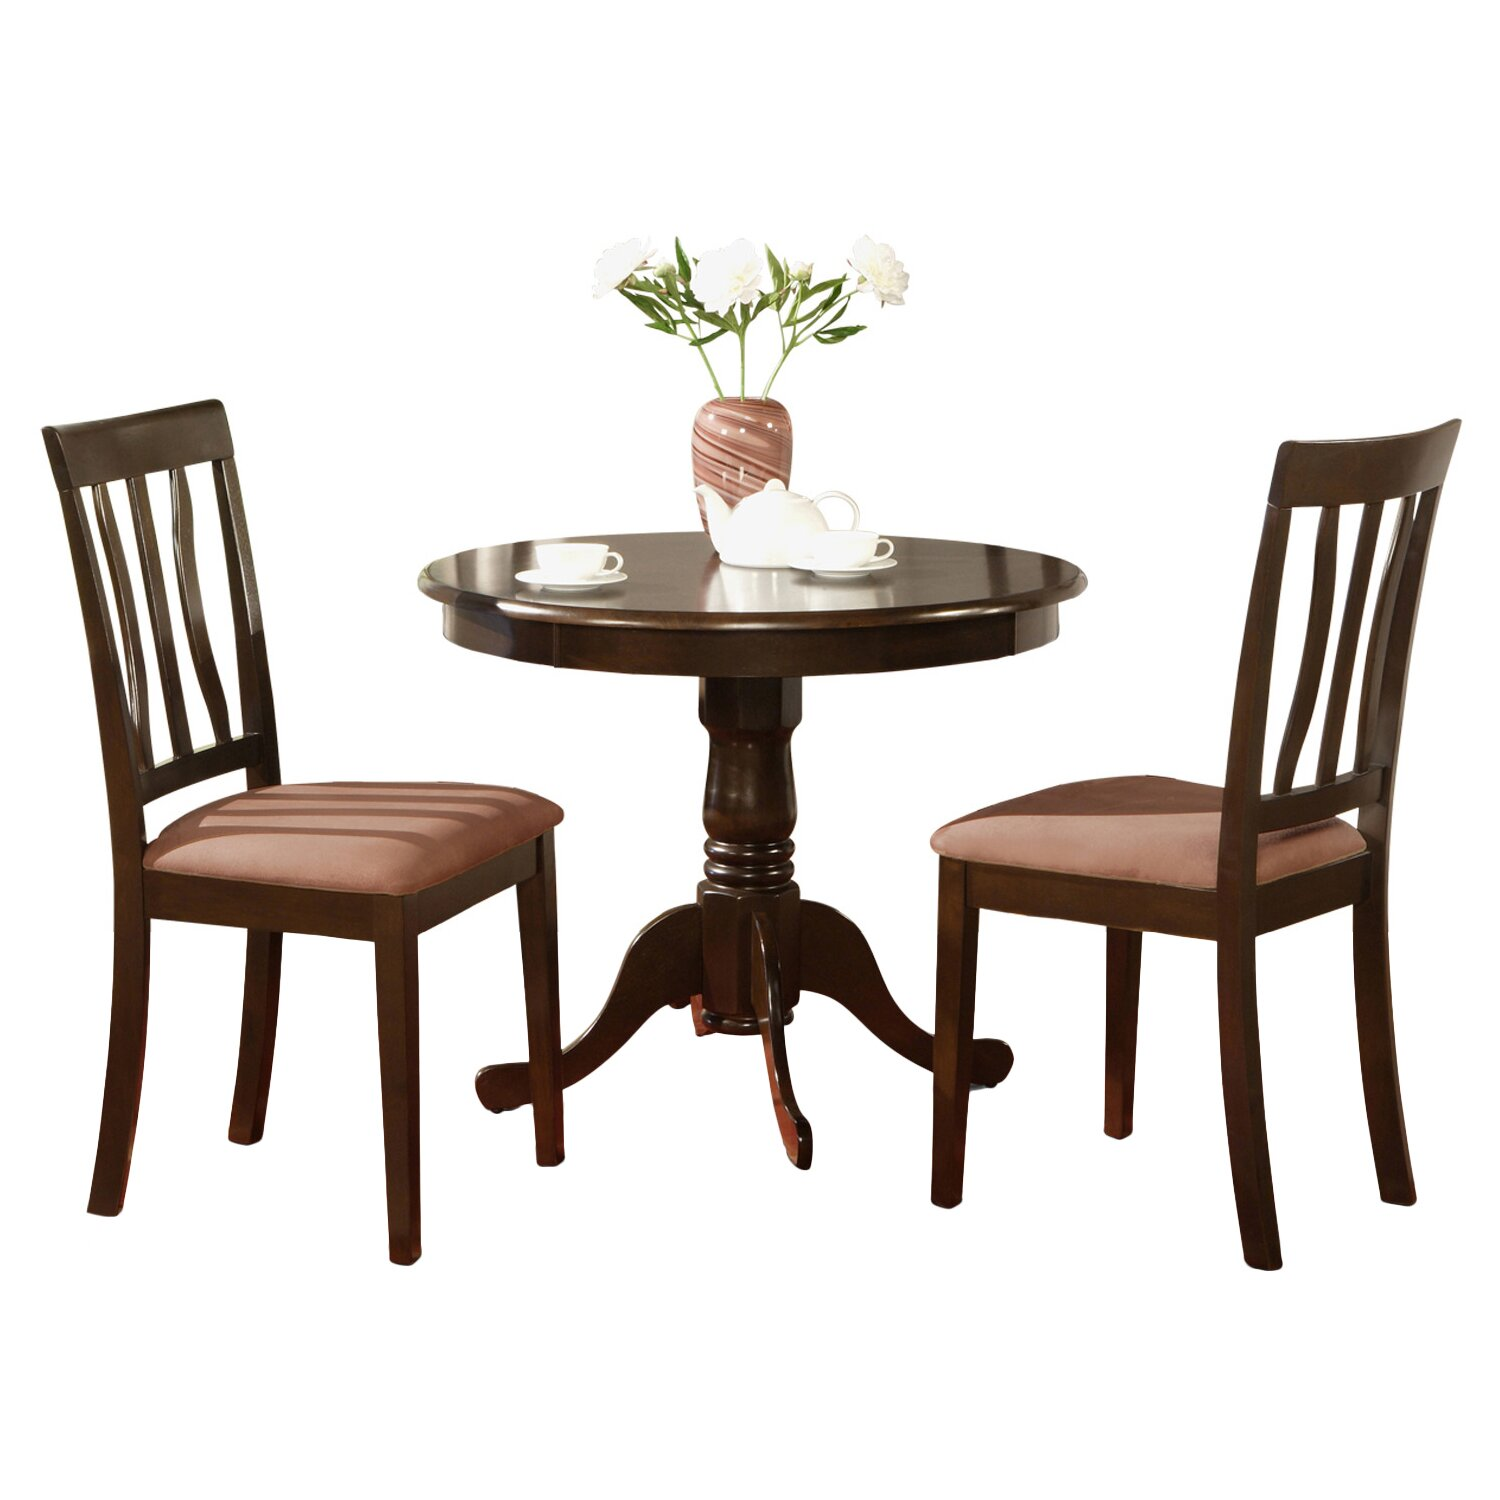 wooden importers antique 3 piece dining set reviews wayfair. Black Bedroom Furniture Sets. Home Design Ideas